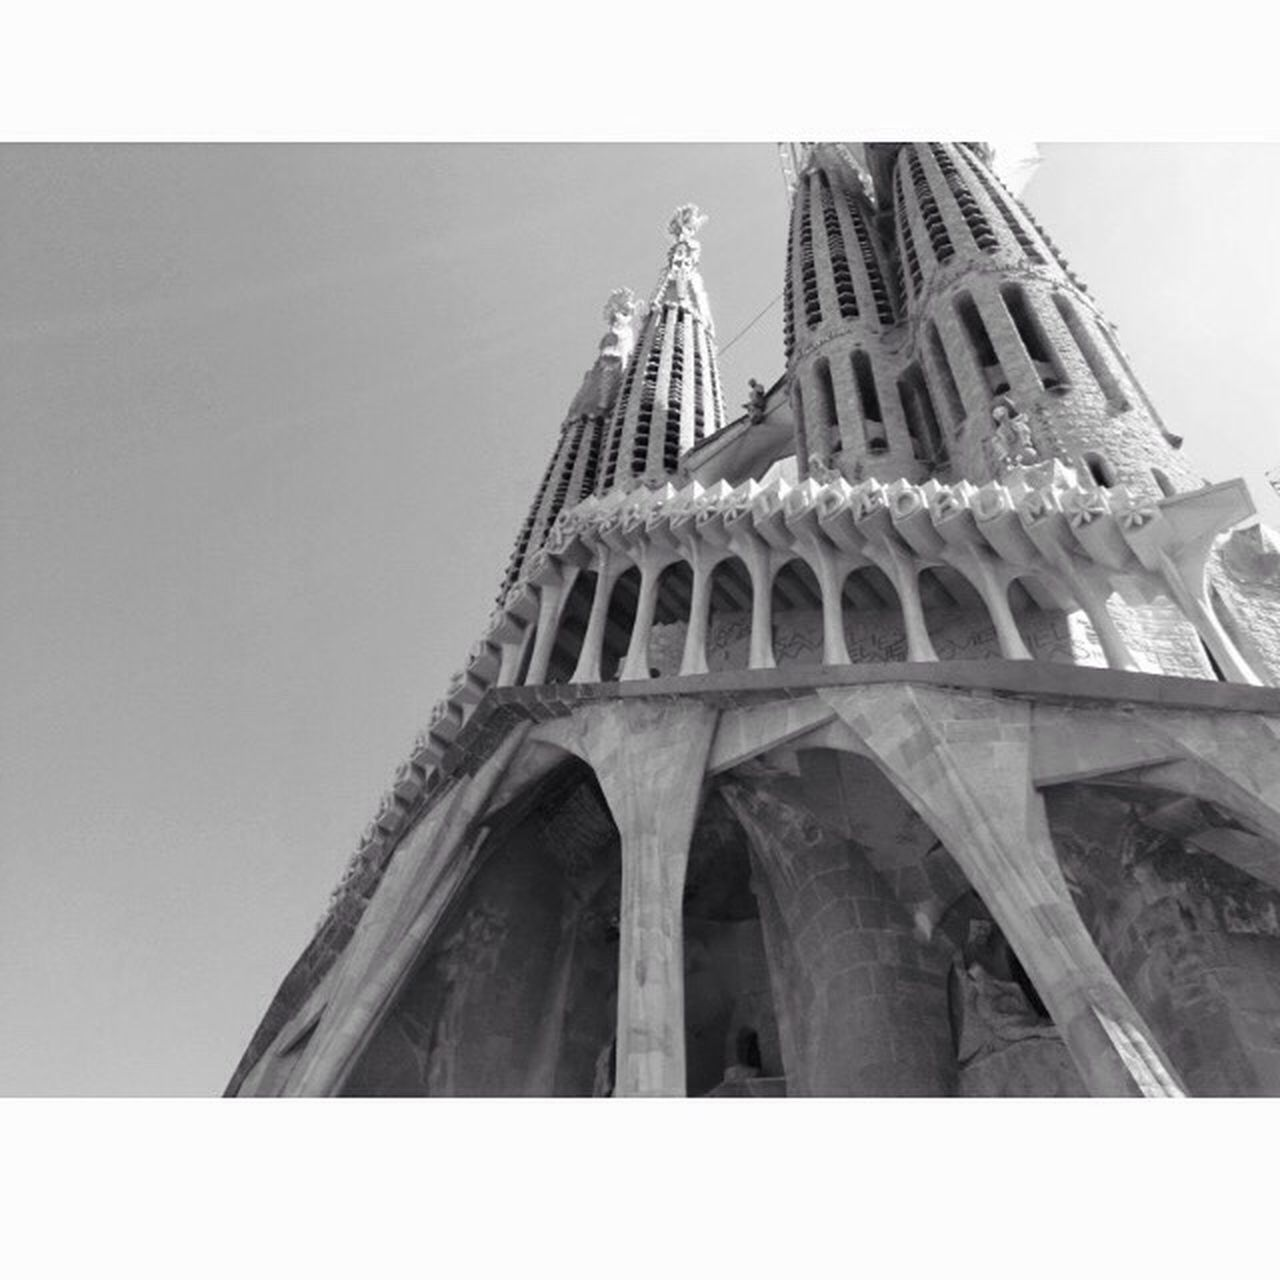 Barcelona Holidays Sun Sky Beautiful City España Blackandwhite Taking Photos Hello World Enjoying Life Landscape Eyemphotography Photography Memories Followme Gaudi Sagrada Familia